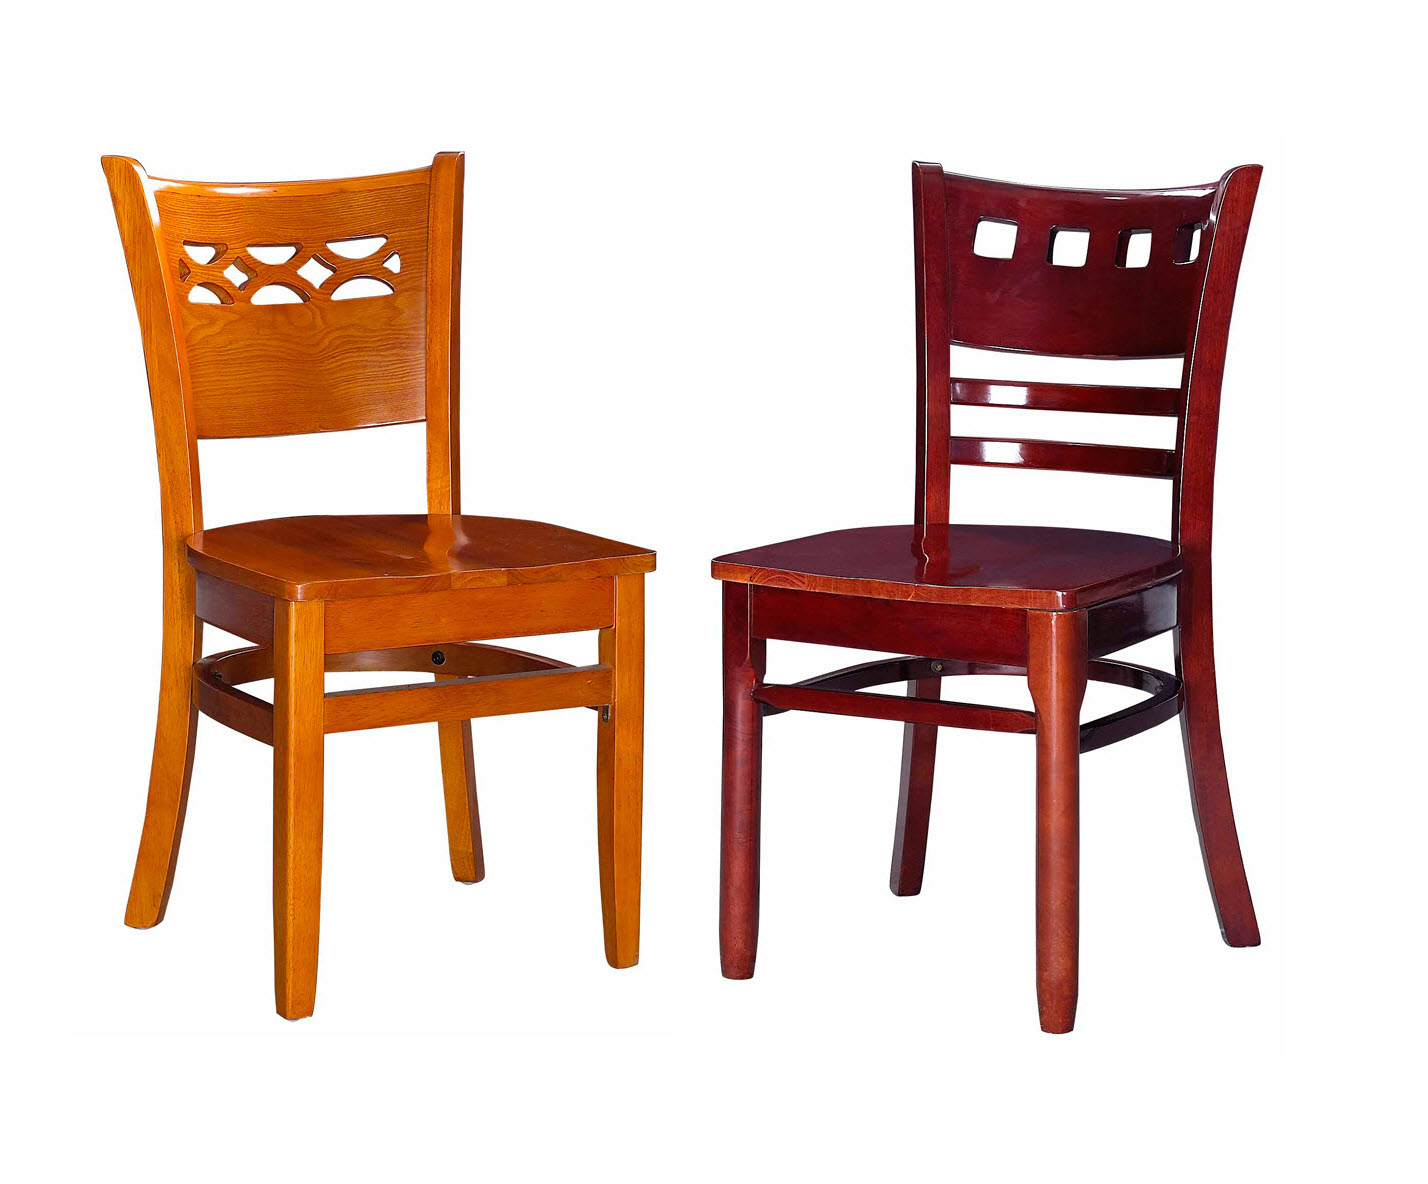 Wood restaurant furniture - Restaurant Chairs Restaurant Furniture Restaurant Tips And Advice